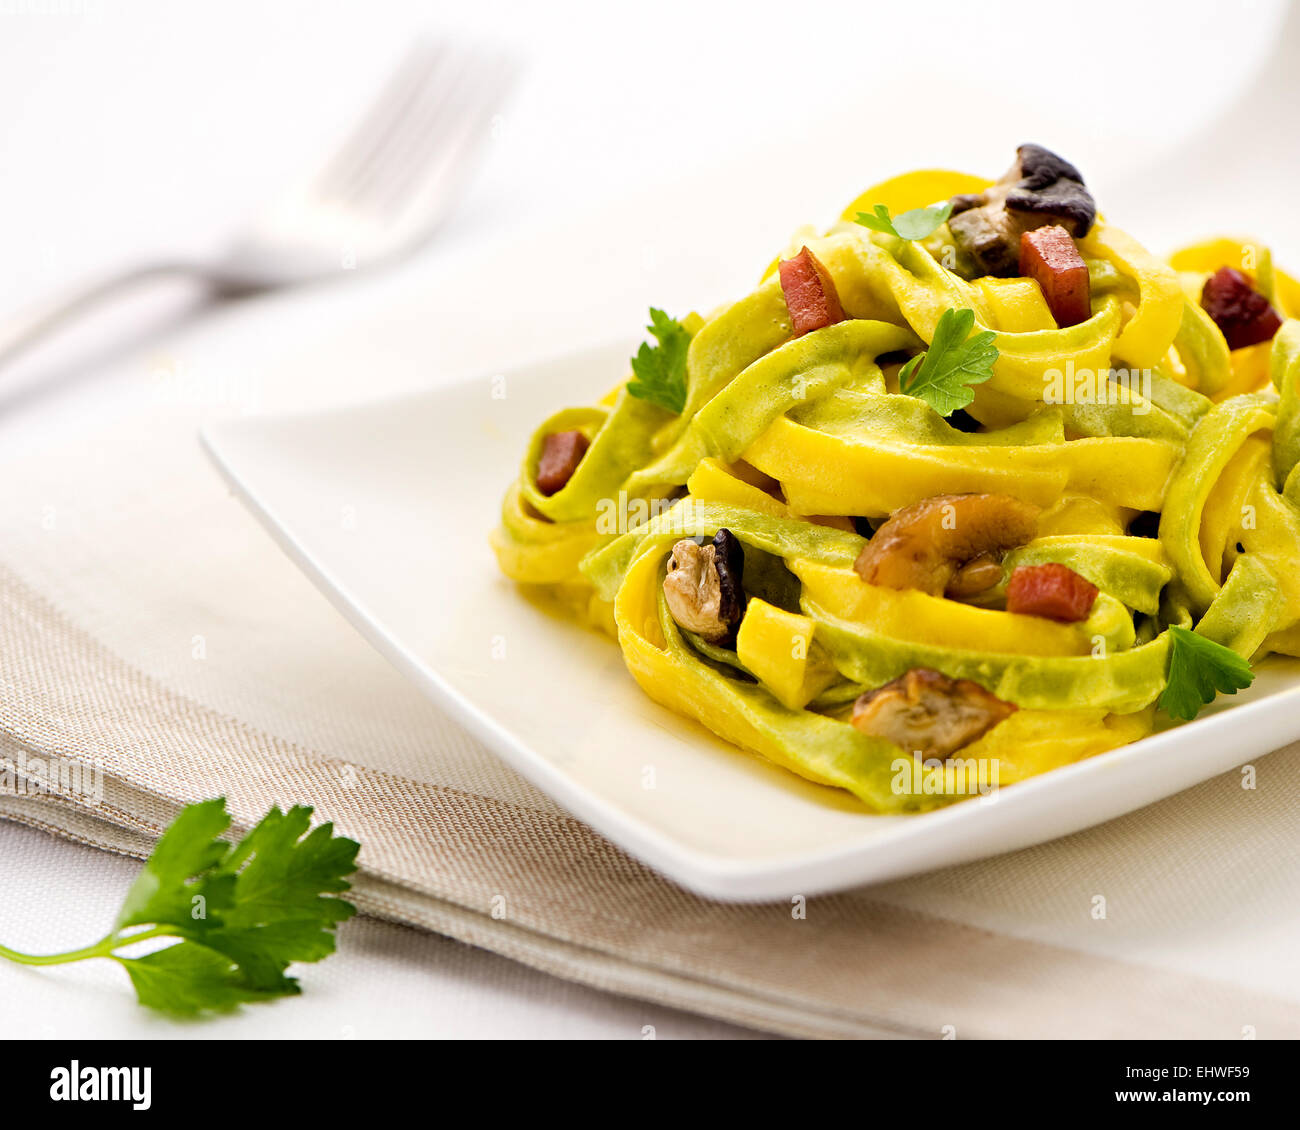 Paglia e fieno, or Straw and hay, tagliatelle Italian pasta with a mixture of yellow and green spinach-flavored - Stock Image